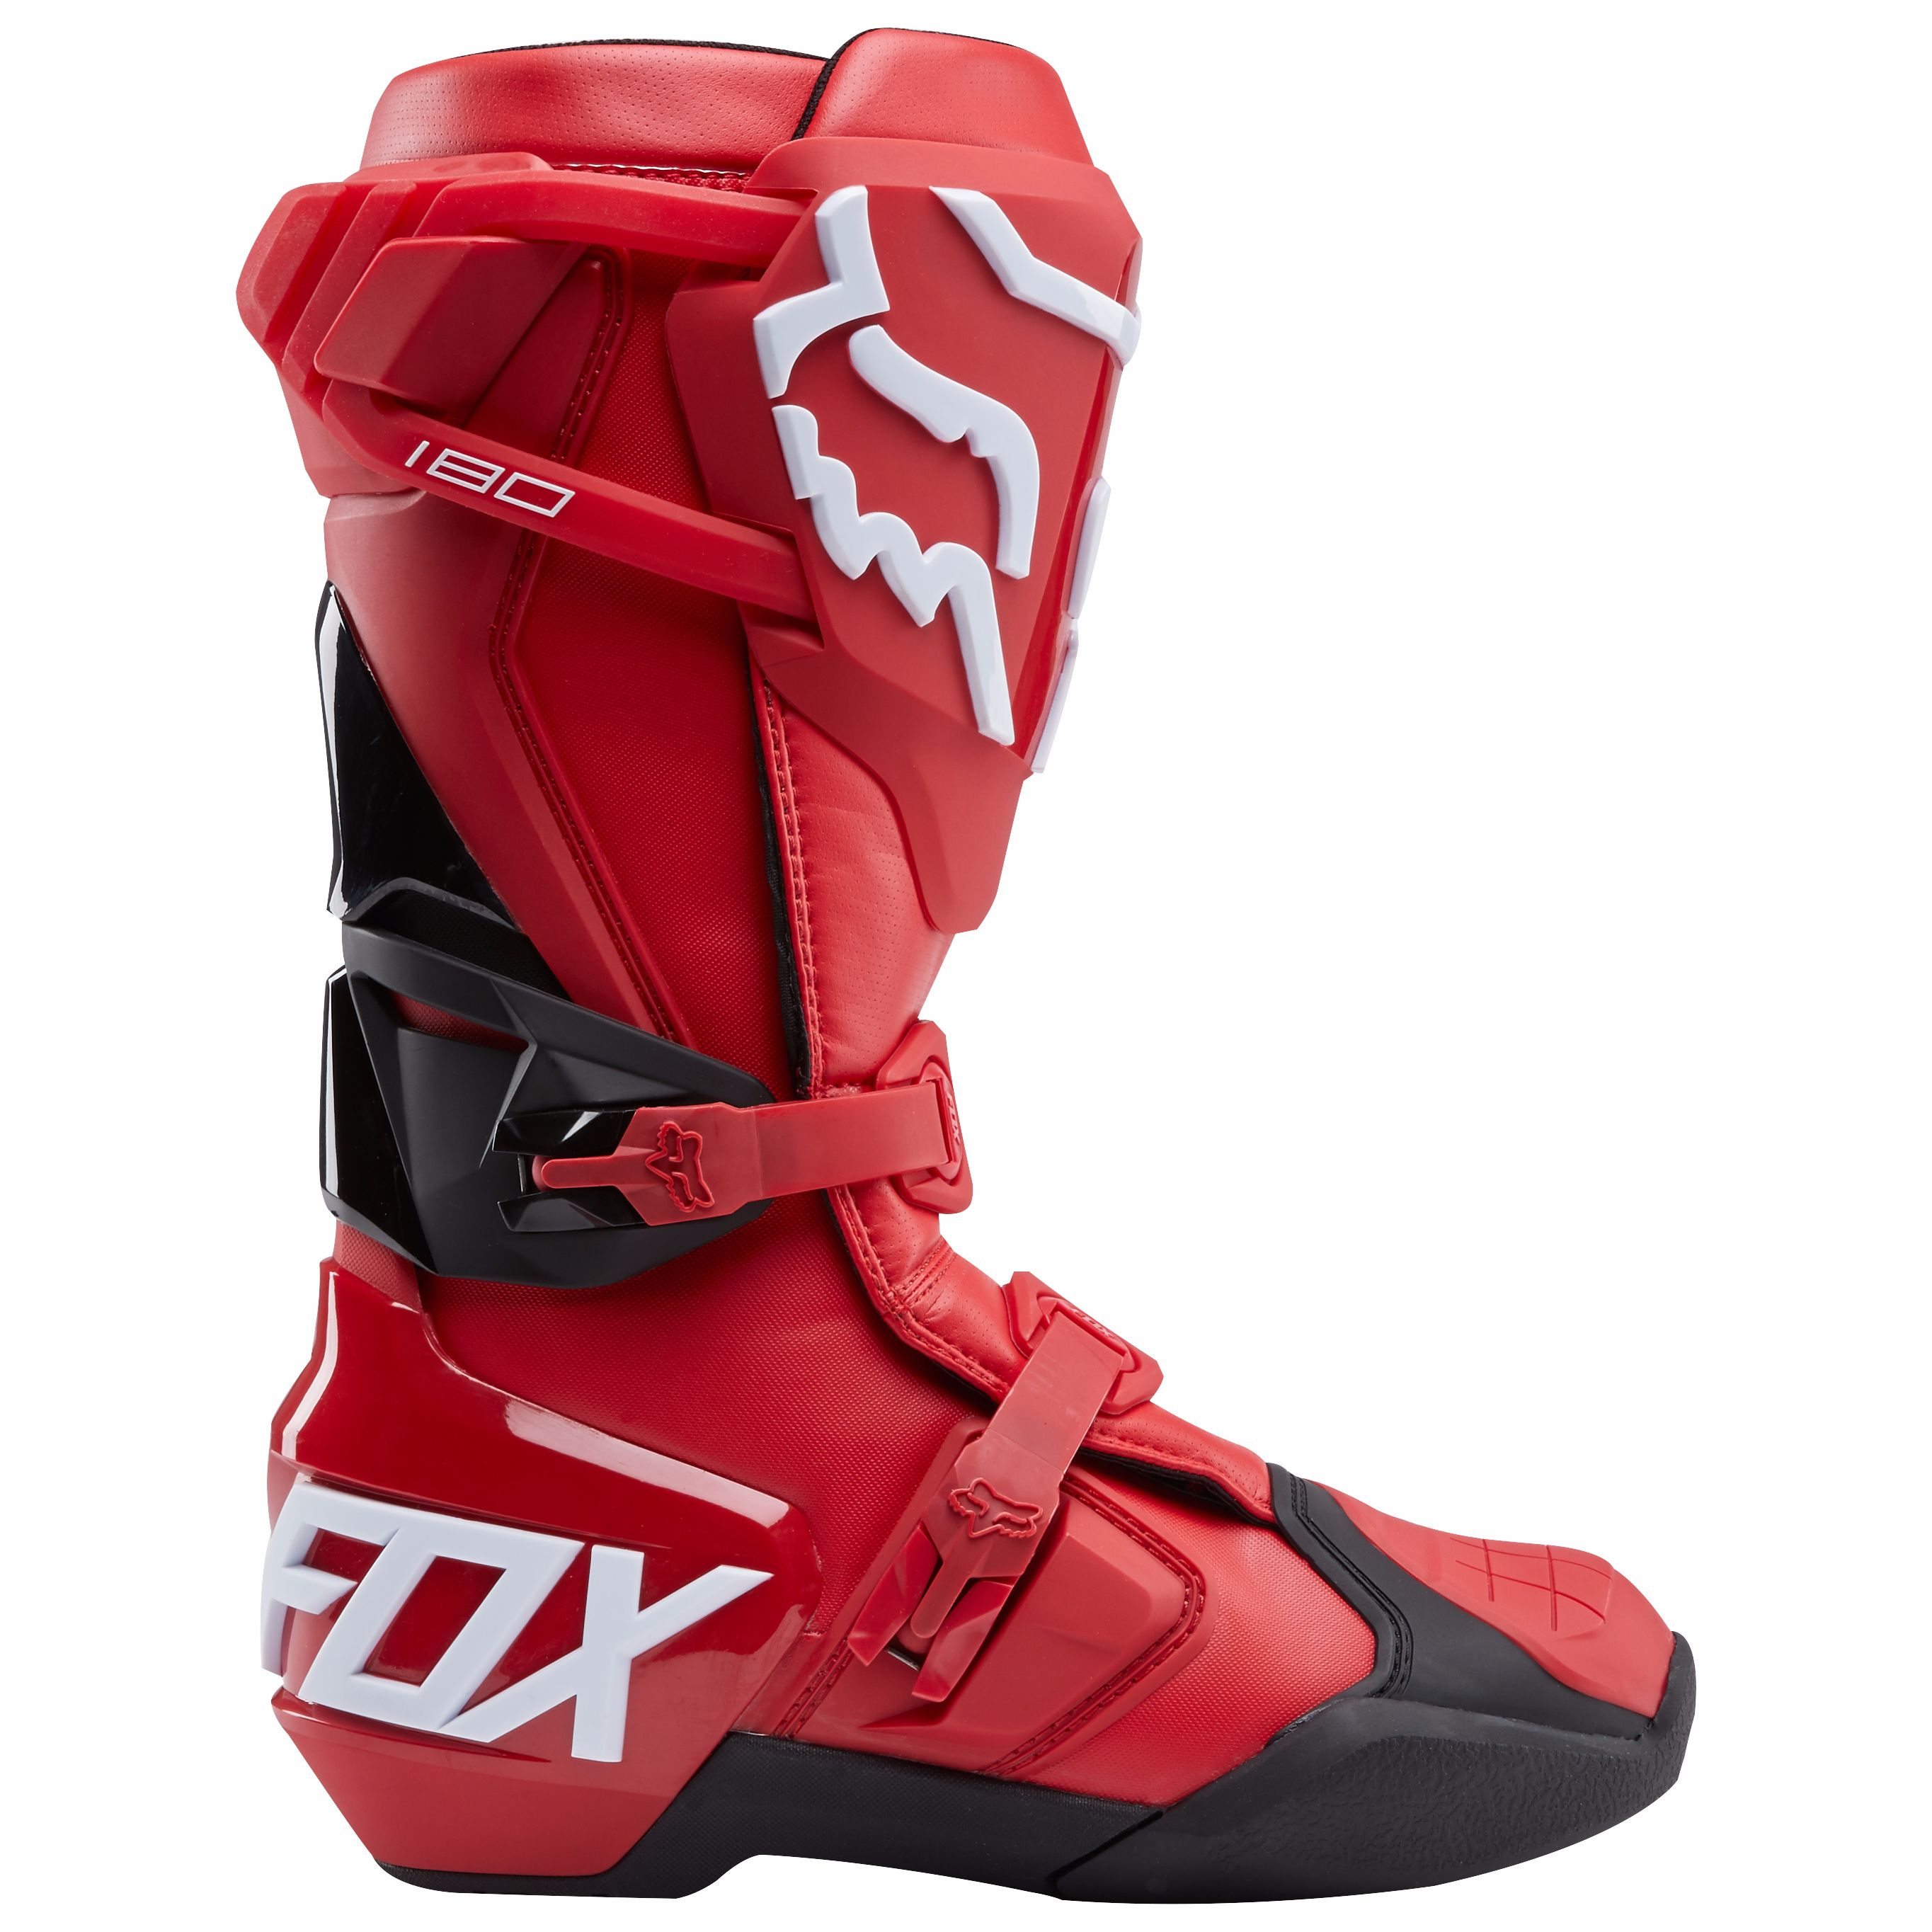 Bottes cross Fox 180 - ROUGE - 2018